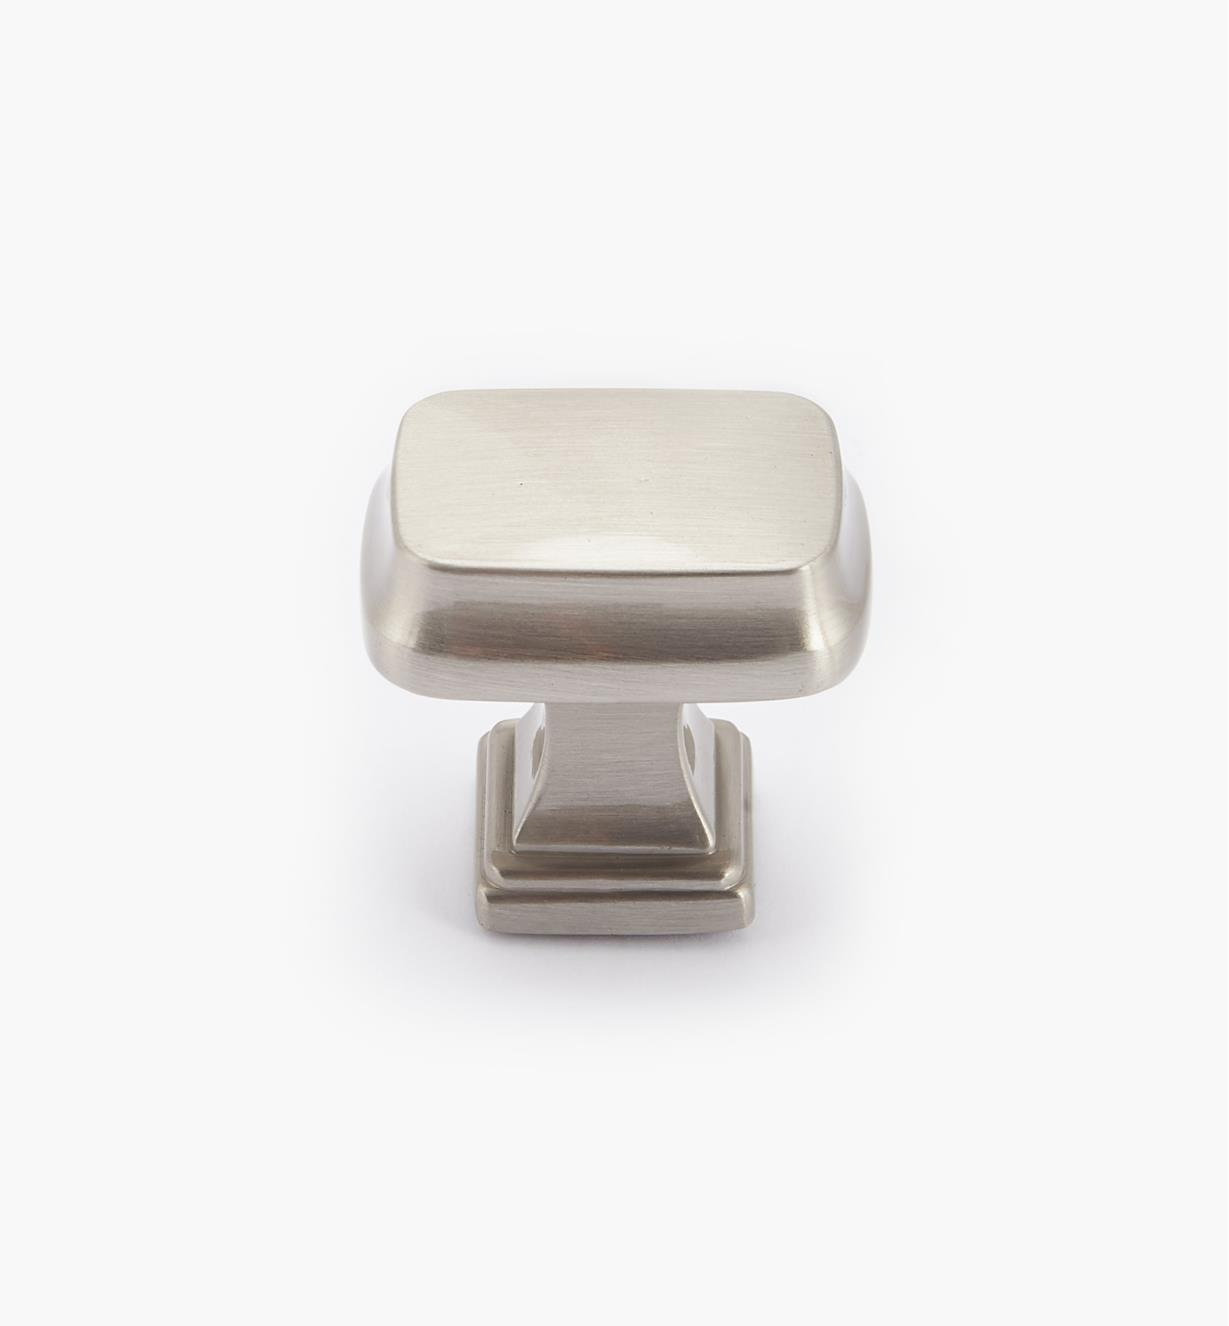 "02A1680 - Revitalize SC 1 1/4"" Rectangular Knob, each"